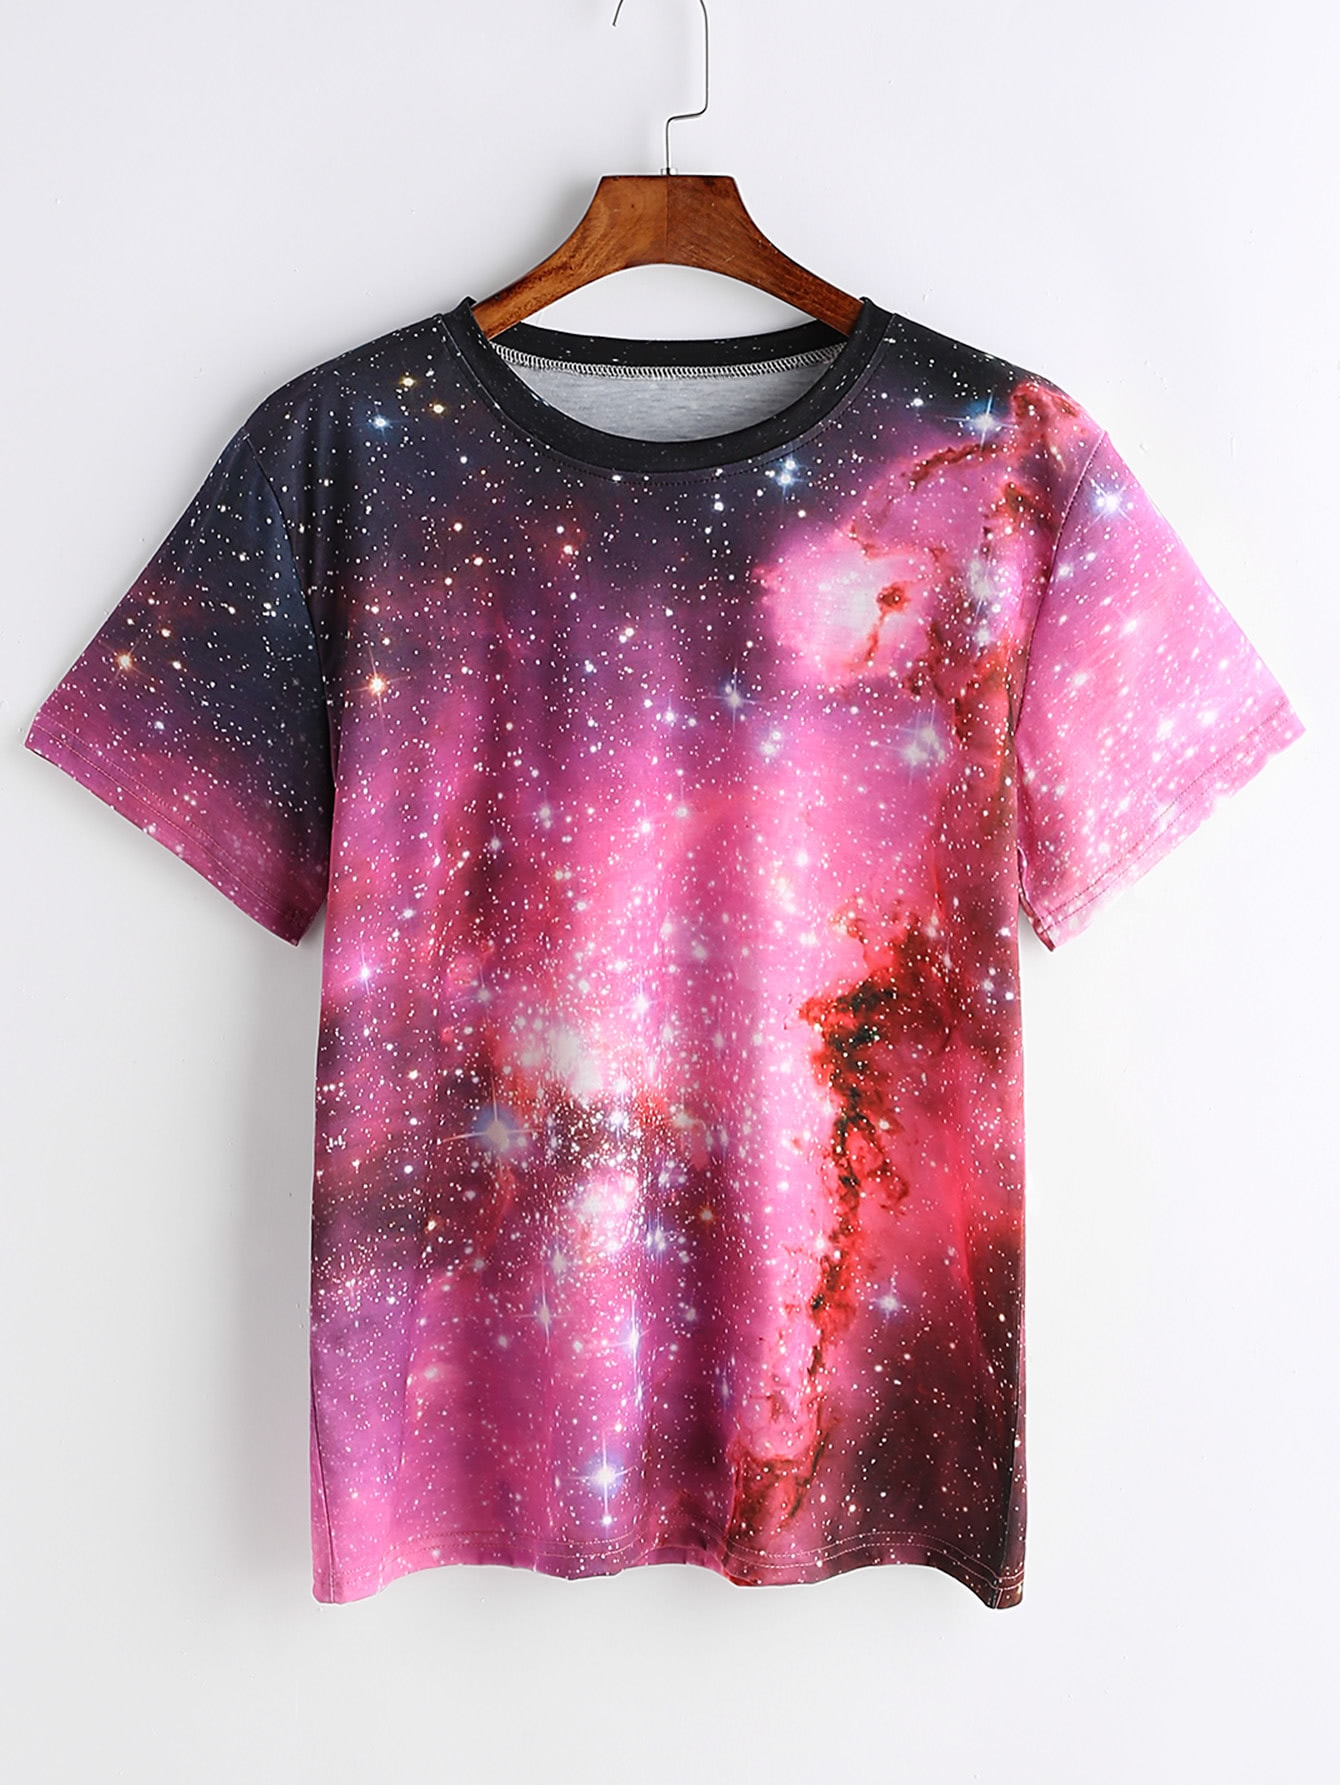 Starry Space Print T-shirt original supply 3138 158 64202 me5p 23 3138 6254 3 used disassemble